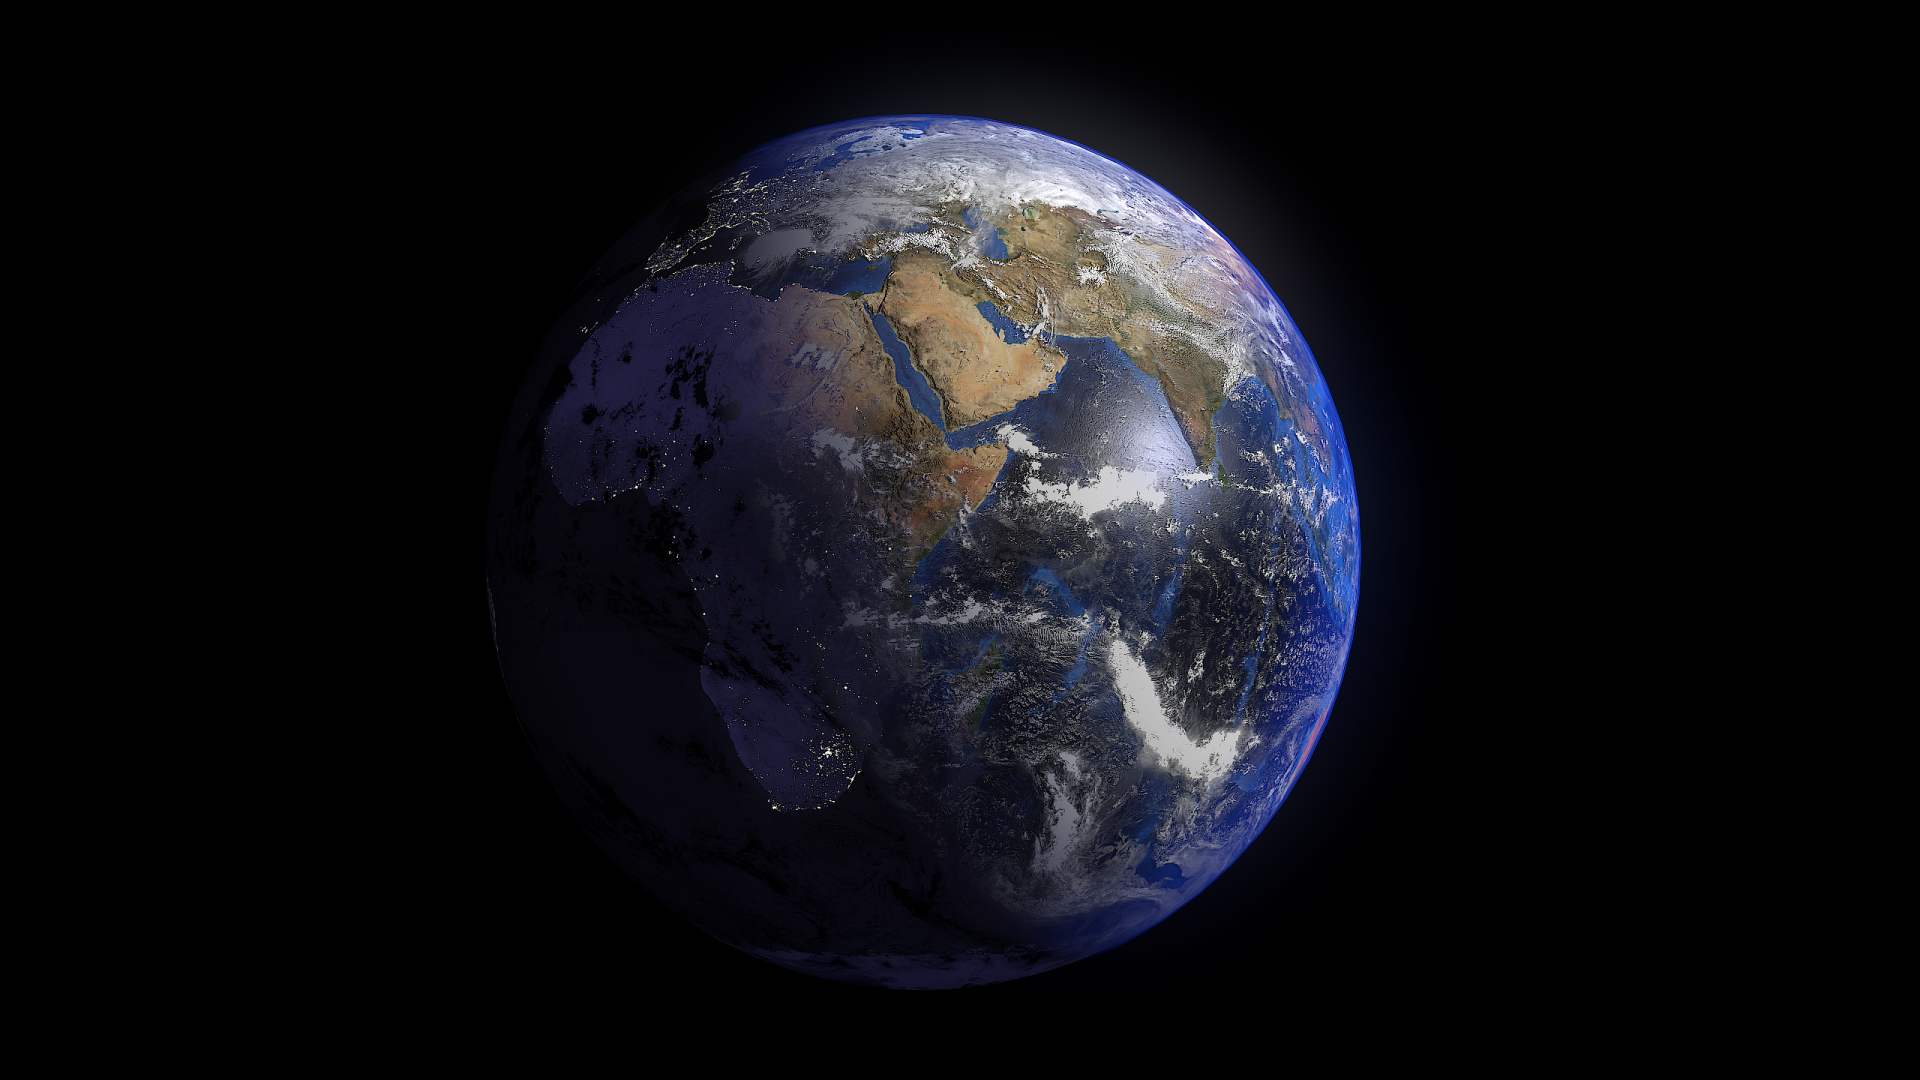 Earth 10k 3d model 3ds fbx blend dae obj 209741